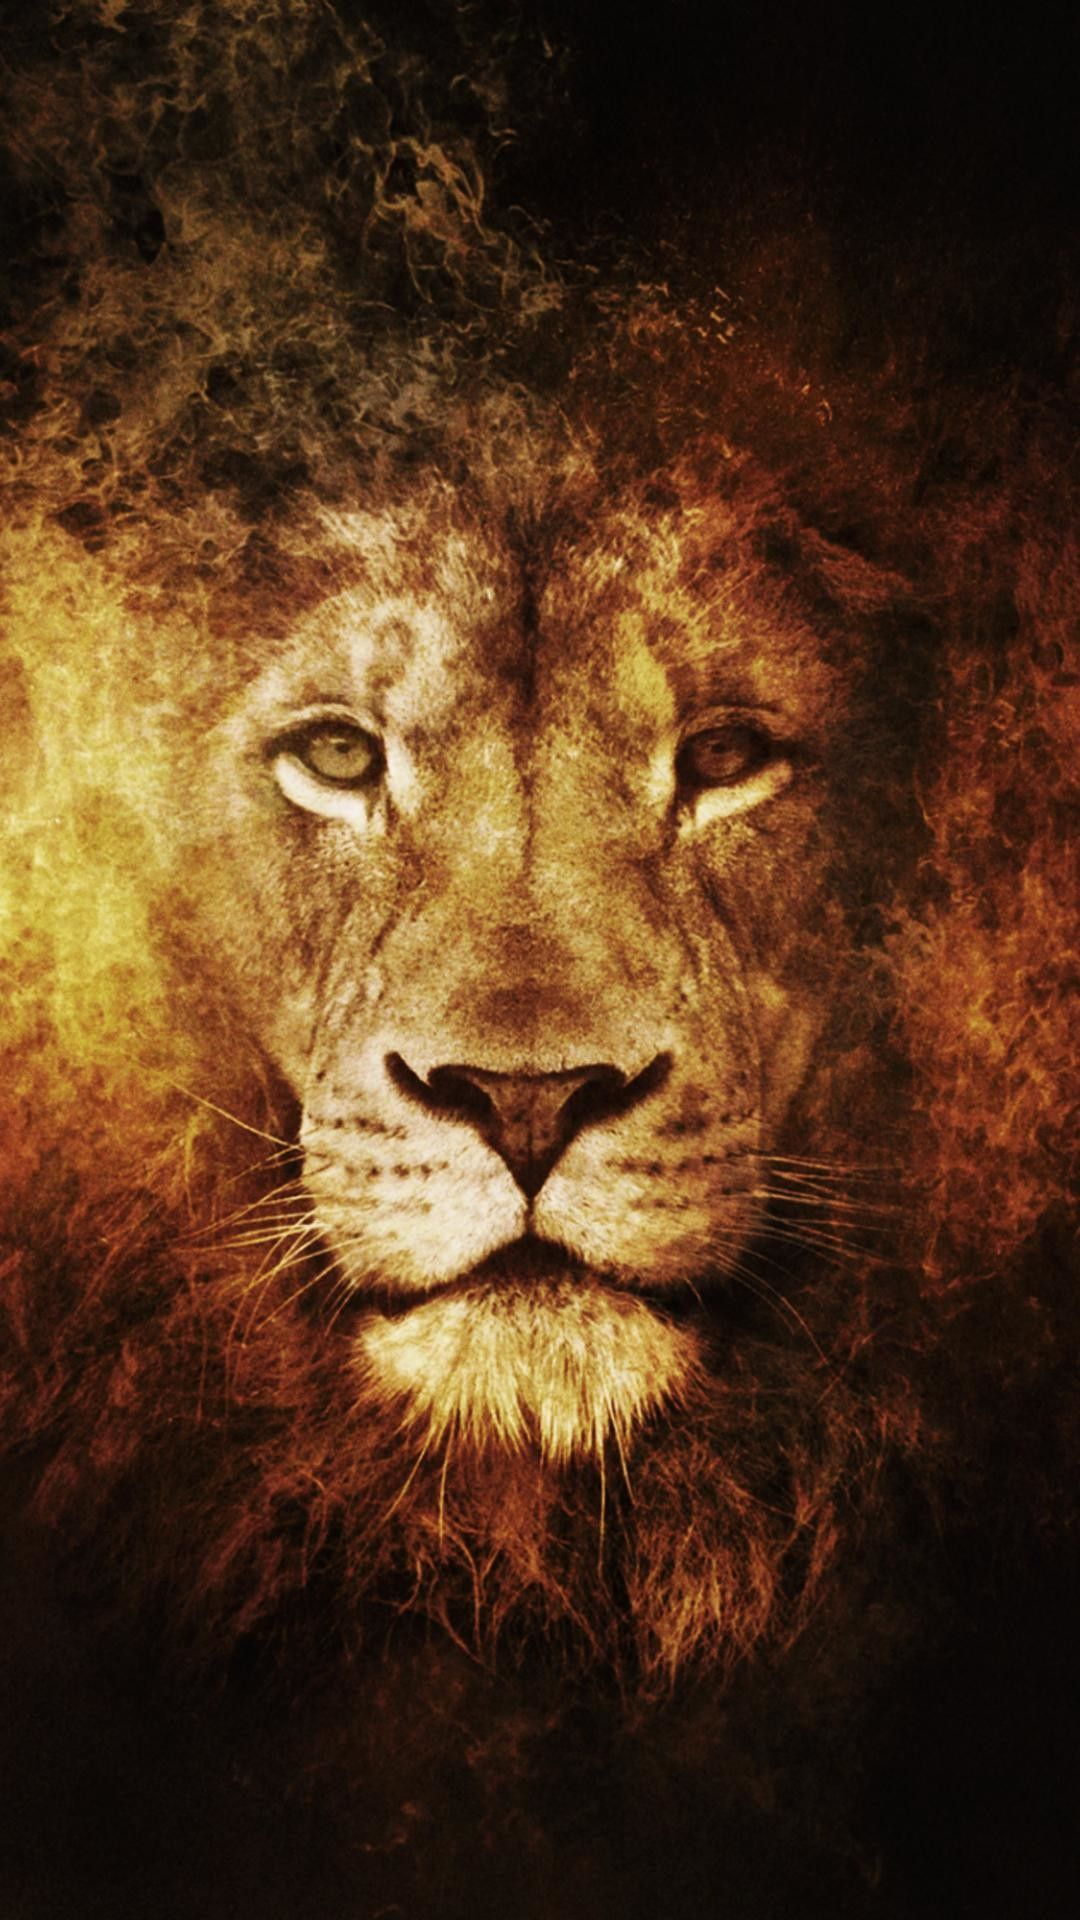 Angry Lion Wallpaper Download In 2020 Lion Artwork Lion Hd Wallpaper Lion Pictures